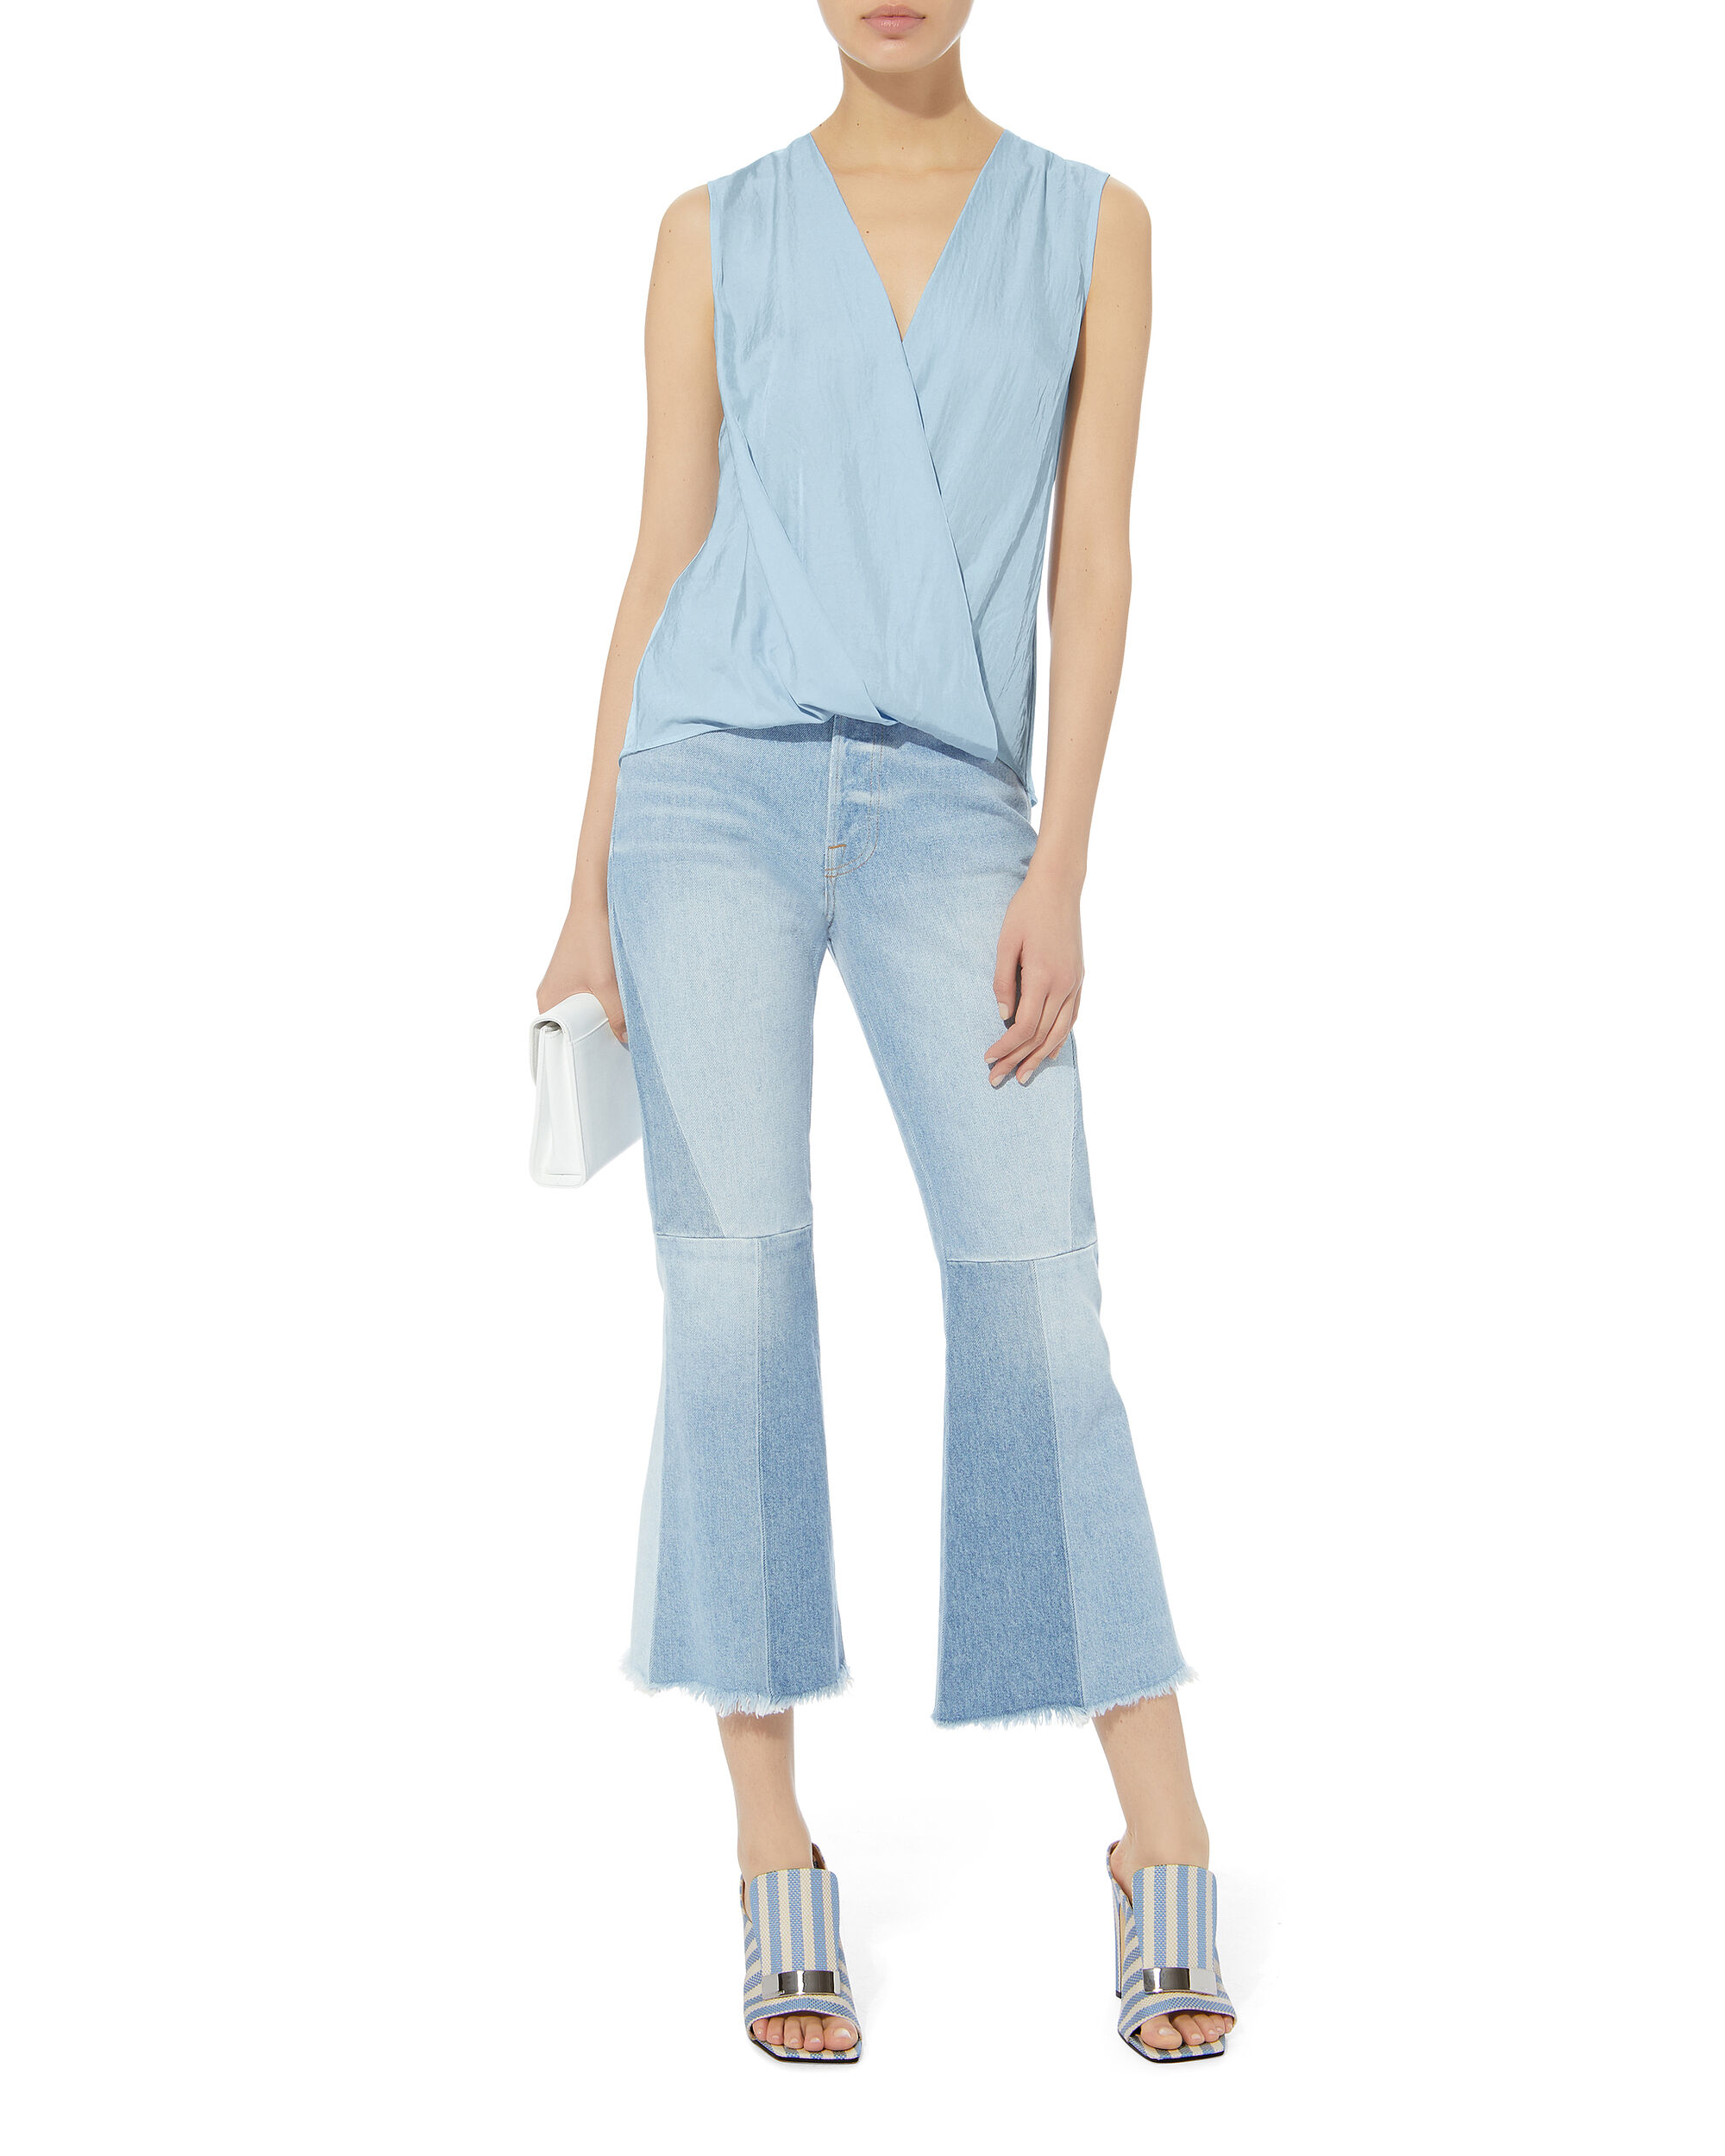 Victor Sky Blue Wrap Blouse, BLUE-LT, hi-res